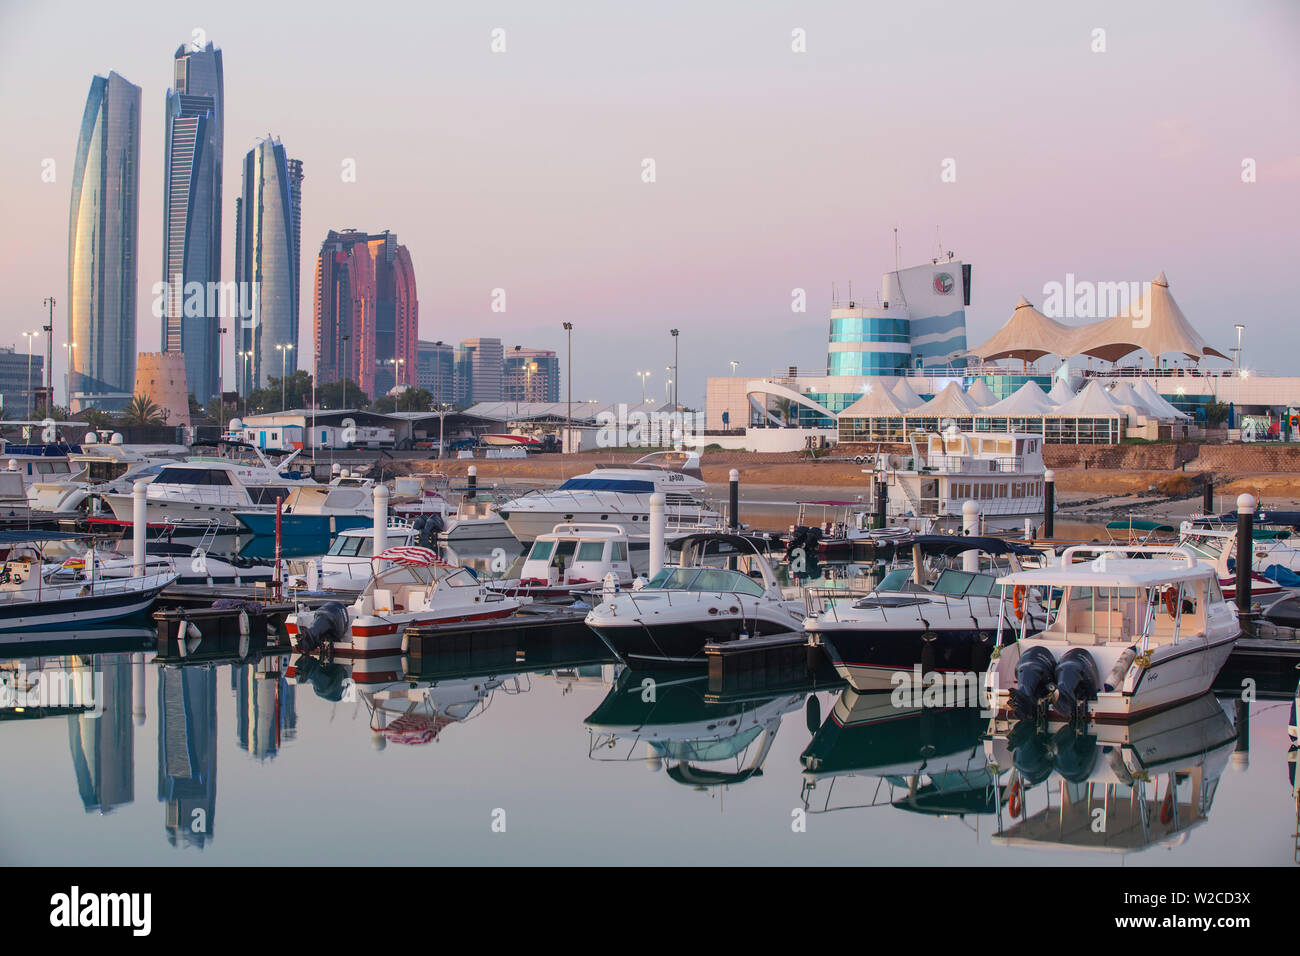 United Arab Emirates, Abu Dhabi, View of Marina and City skyline looking towards Etihad Towers and to the right the Abu Dhabi International Marine Sports Club - Stock Image